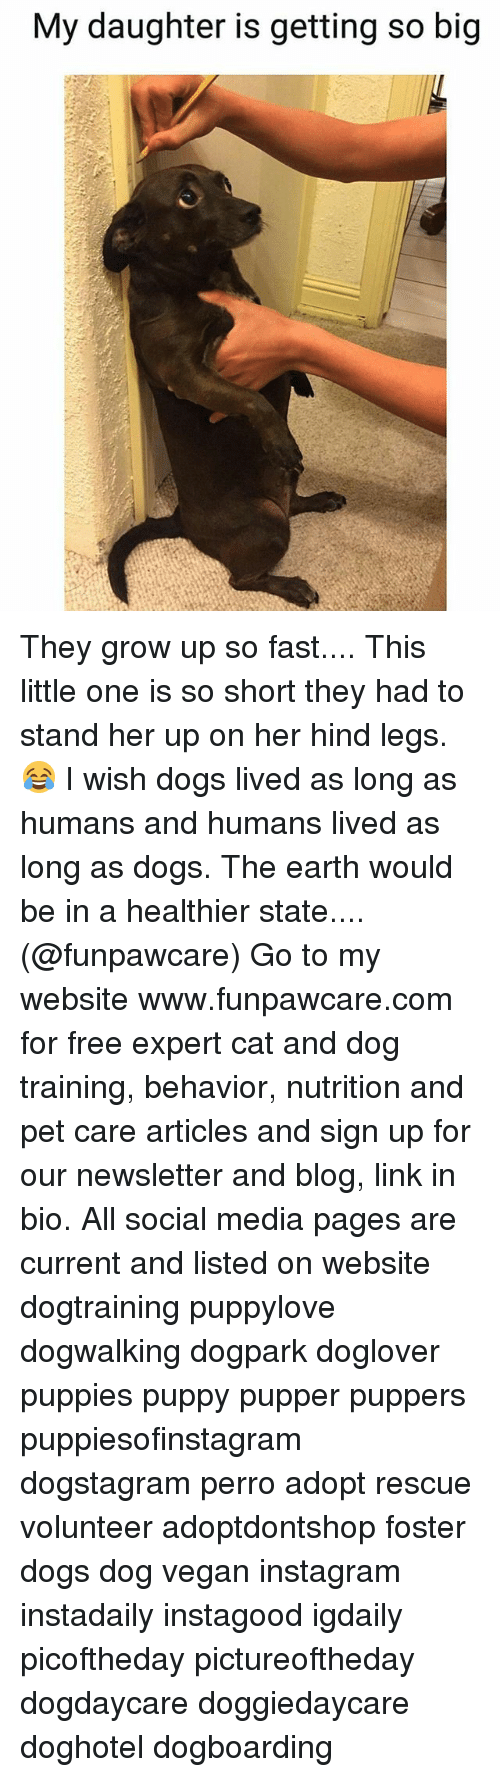 Dogs, Growing Up, and Instagram: My daughter is getting so big They grow up so fast.... This little one is so short they had to stand her up on her hind legs. 😂 I wish dogs lived as long as humans and humans lived as long as dogs. The earth would be in a healthier state....(@funpawcare) Go to my website www.funpawcare.com for free expert cat and dog training, behavior, nutrition and pet care articles and sign up for our newsletter and blog, link in bio. All social media pages are current and listed on website dogtraining puppylove dogwalking dogpark doglover puppies puppy pupper puppers puppiesofinstagram dogstagram perro adopt rescue volunteer adoptdontshop foster dogs dog vegan instagram instadaily instagood igdaily picoftheday pictureoftheday dogdaycare doggiedaycare doghotel dogboarding